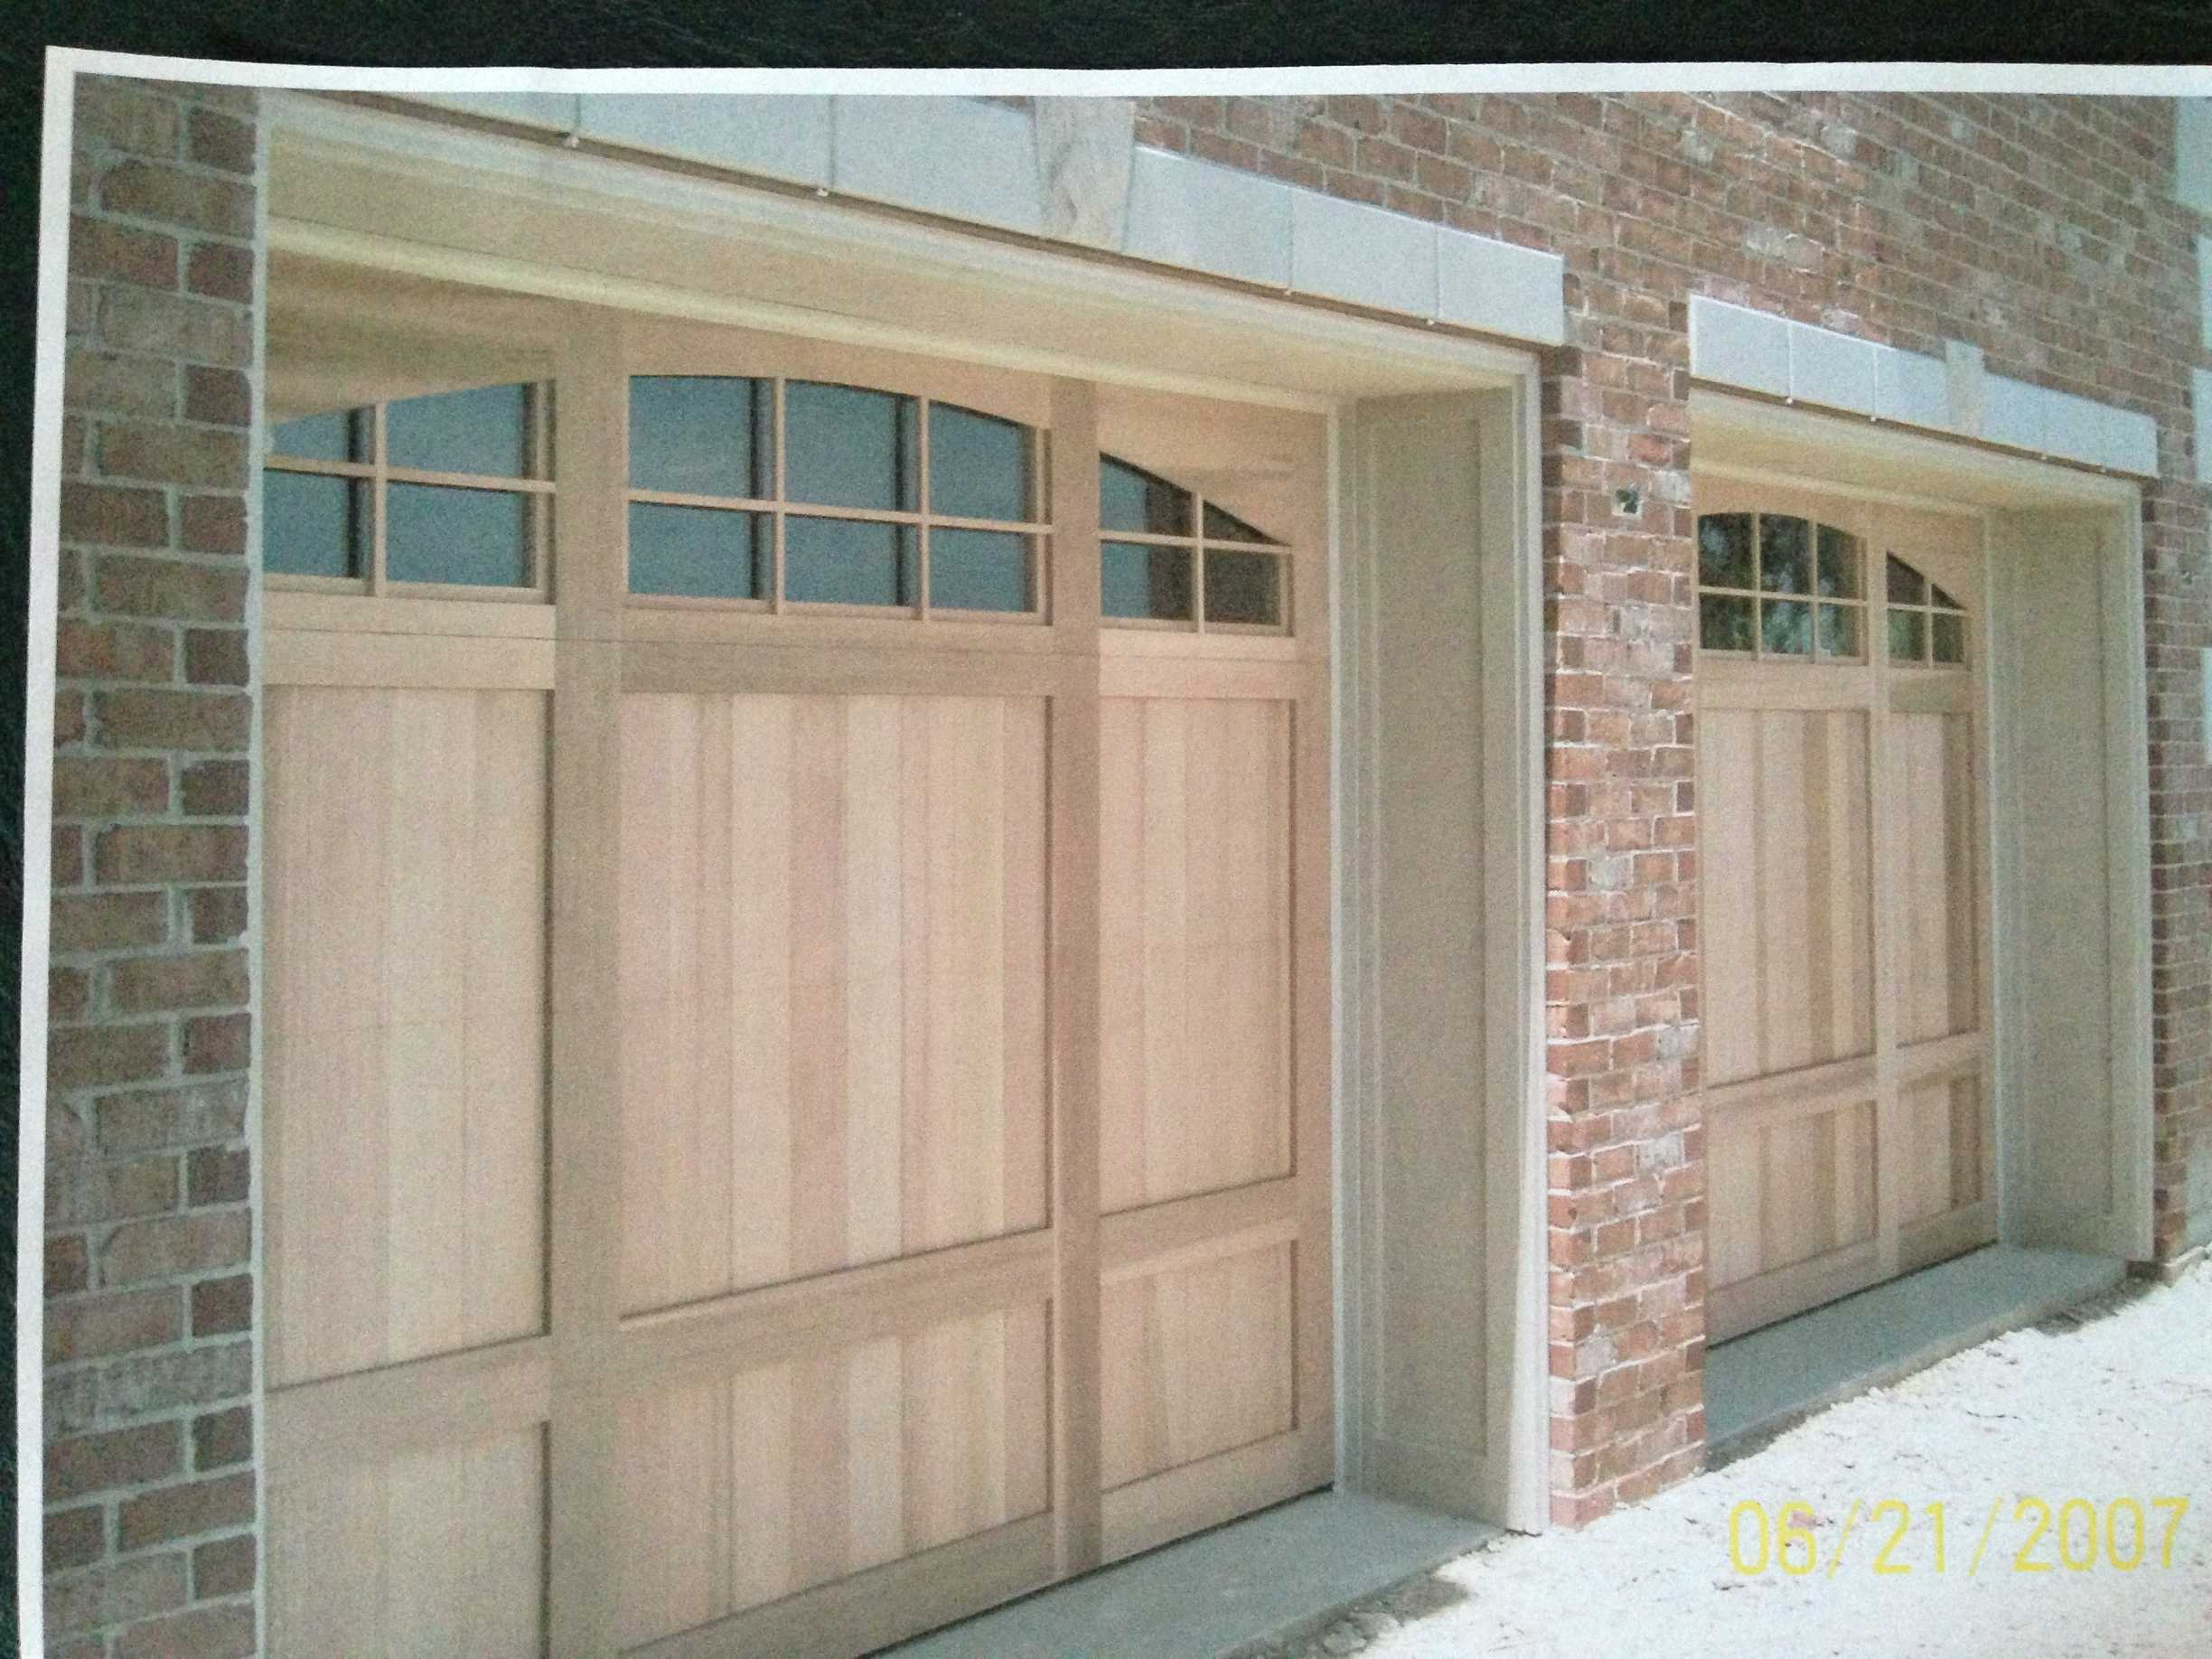 Insulated garage doors greenfield garage door repair garage door milwaukee garage doors garage door installation garage doors milwaukee greenfield garage solutioingenieria Choice Image